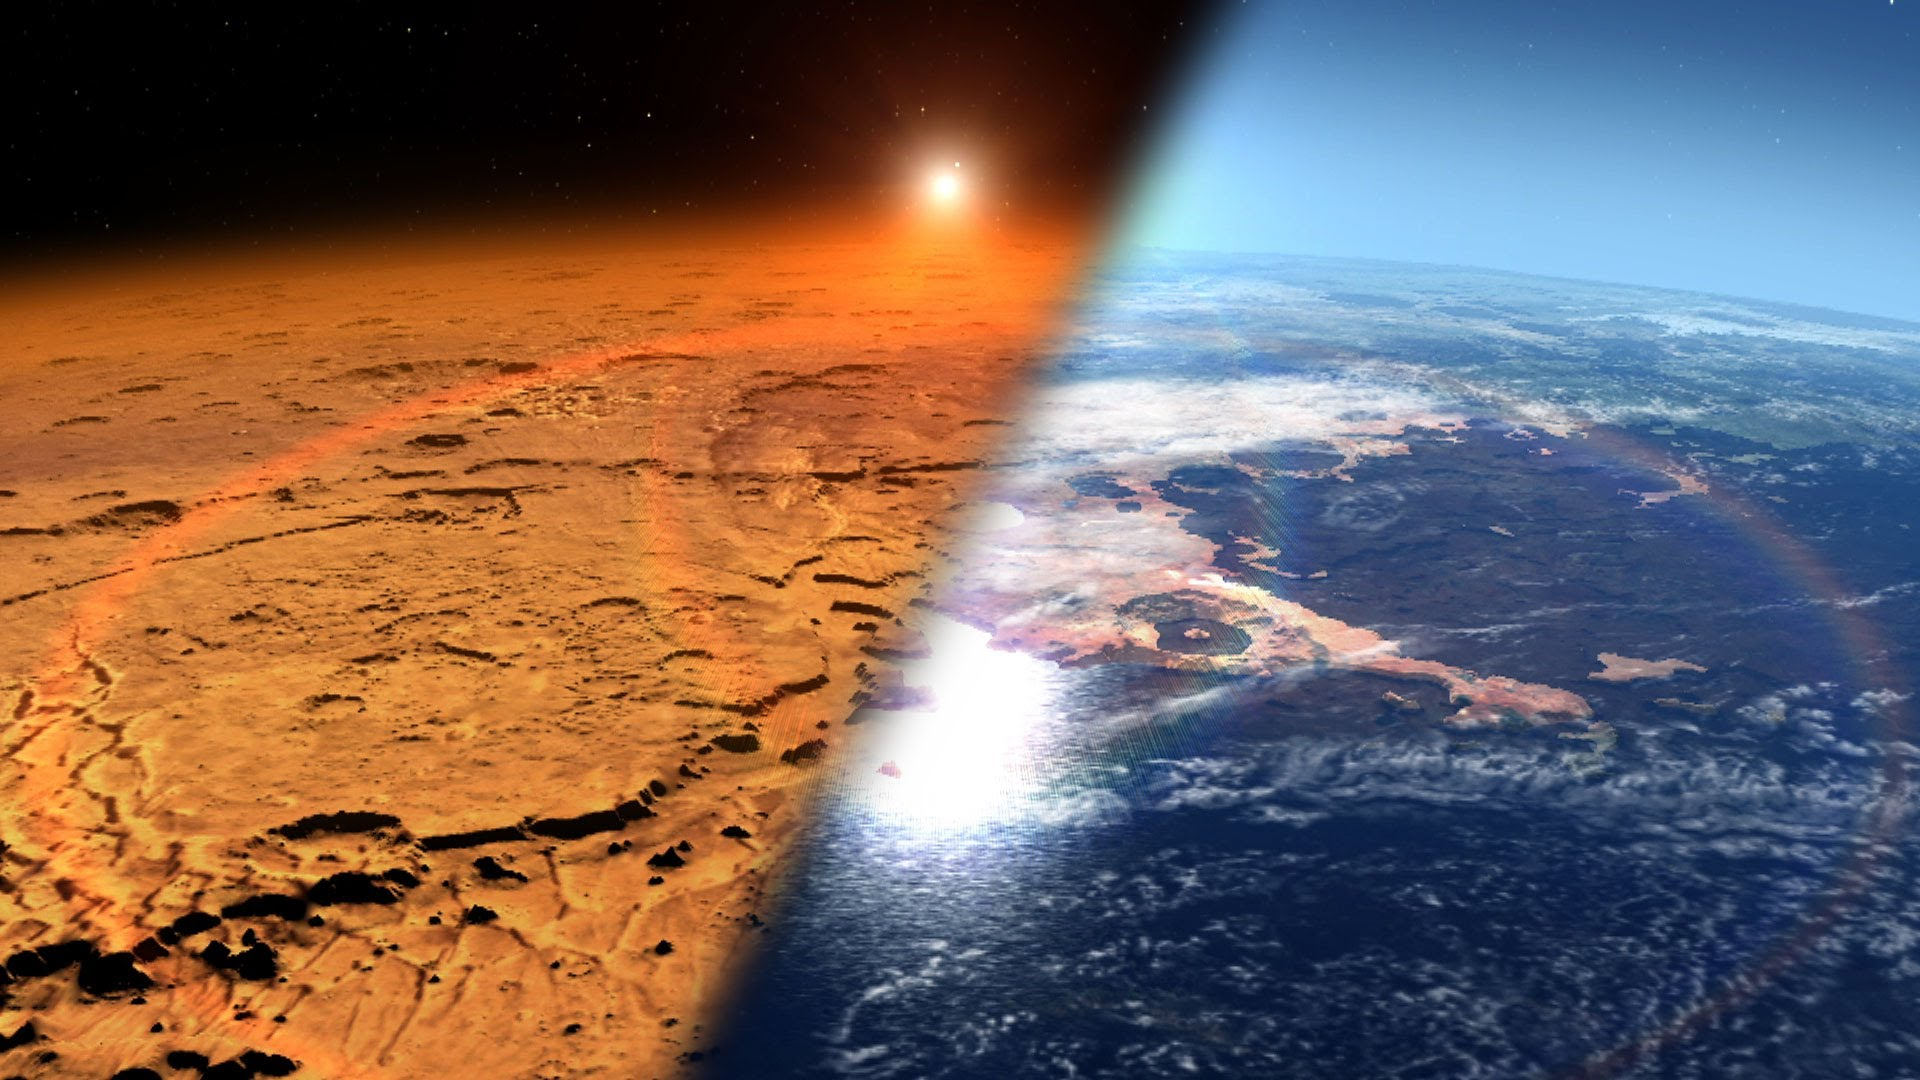 Martian auroras may help track Red Planet